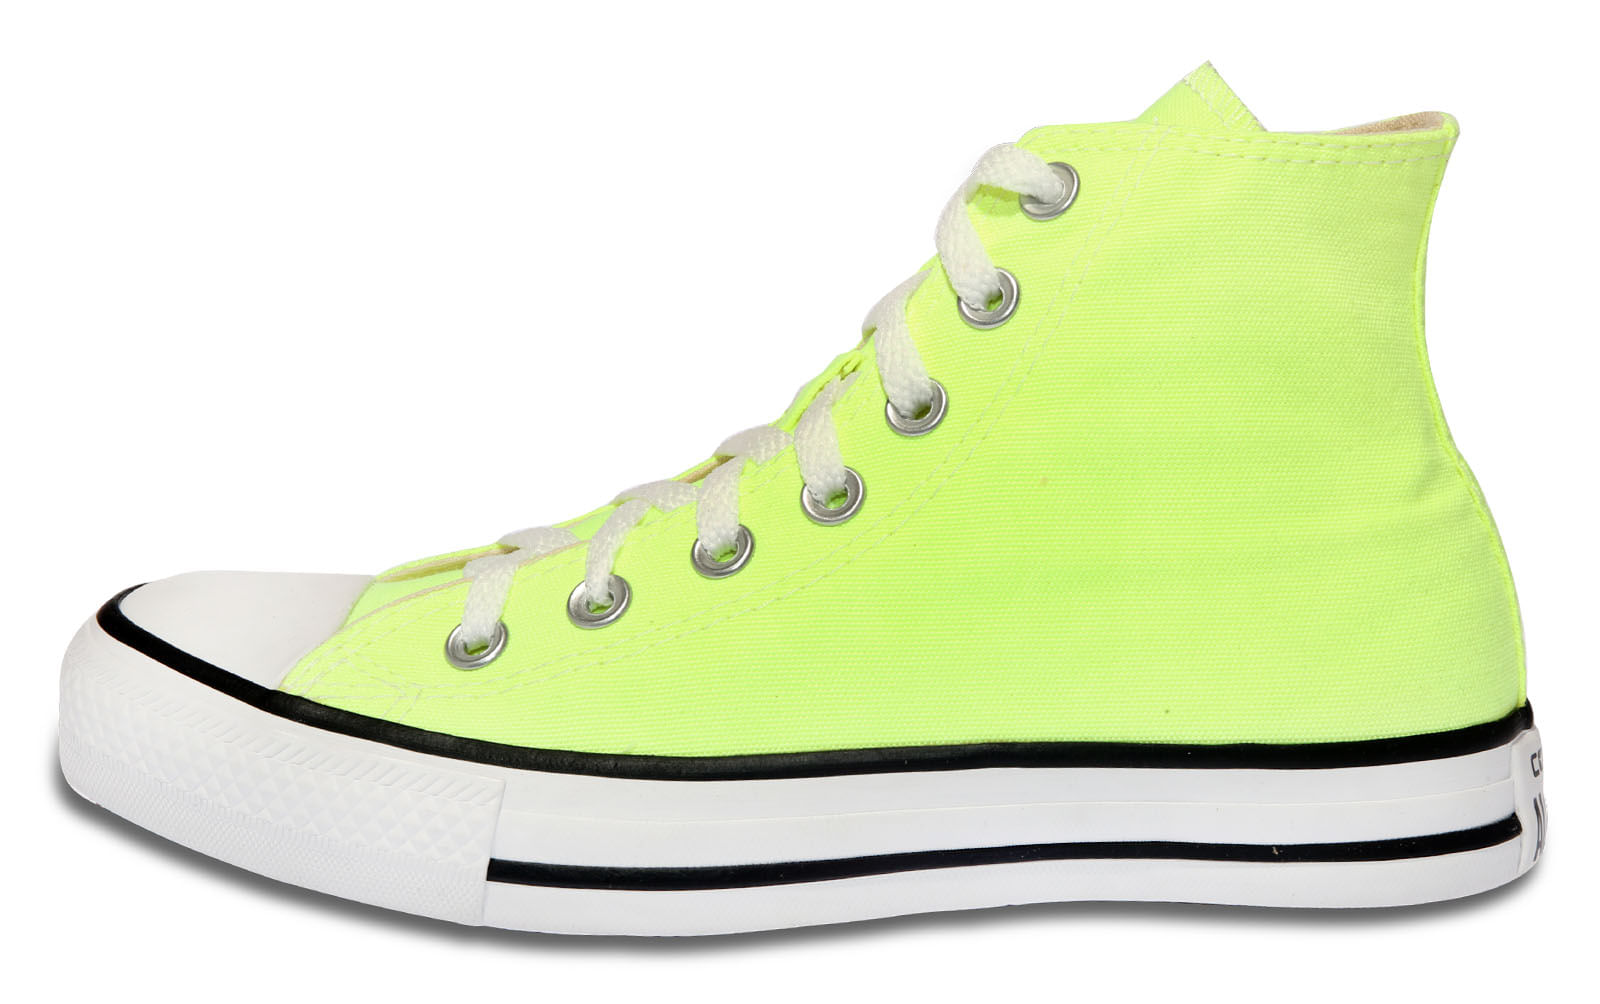 Tenis Chuck Taylor All Star Verde Fluor - theboxproject f55ee9af7f796